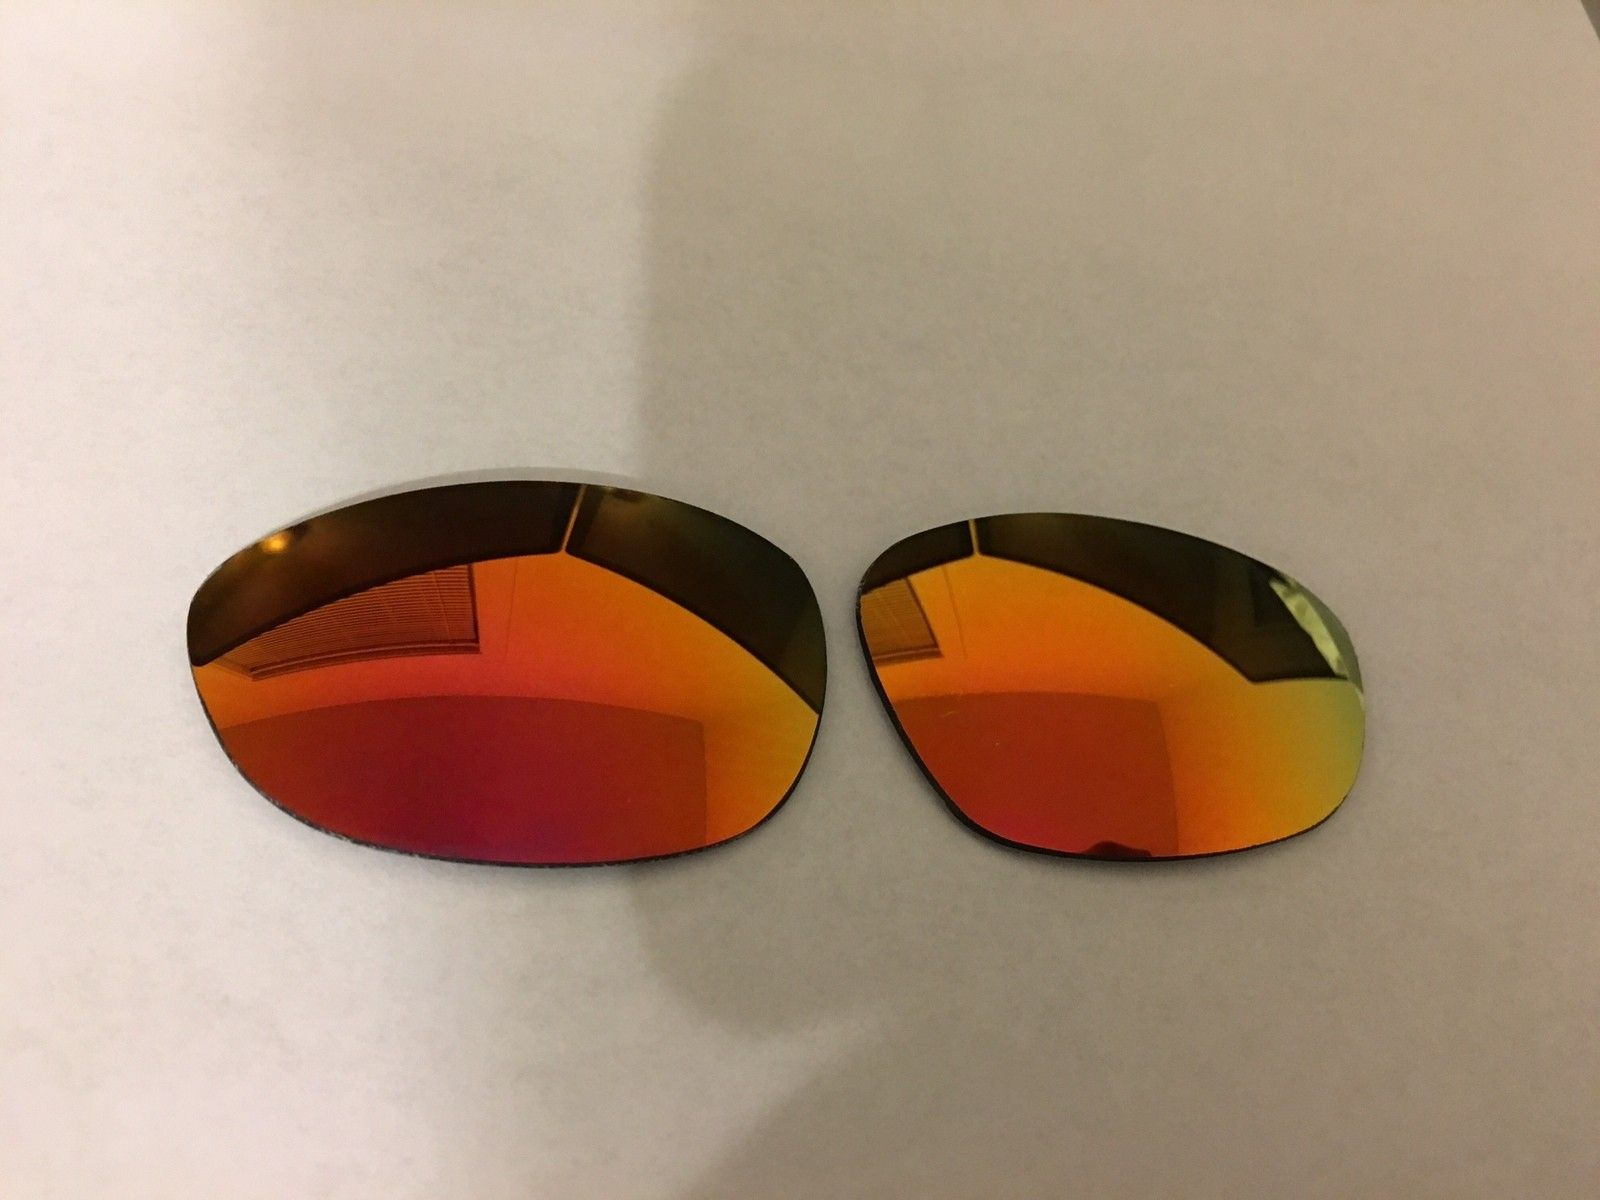 Two Pairs of XX (X-Man Plasma Refinish) with Lens Options - IMG_8450.JPG